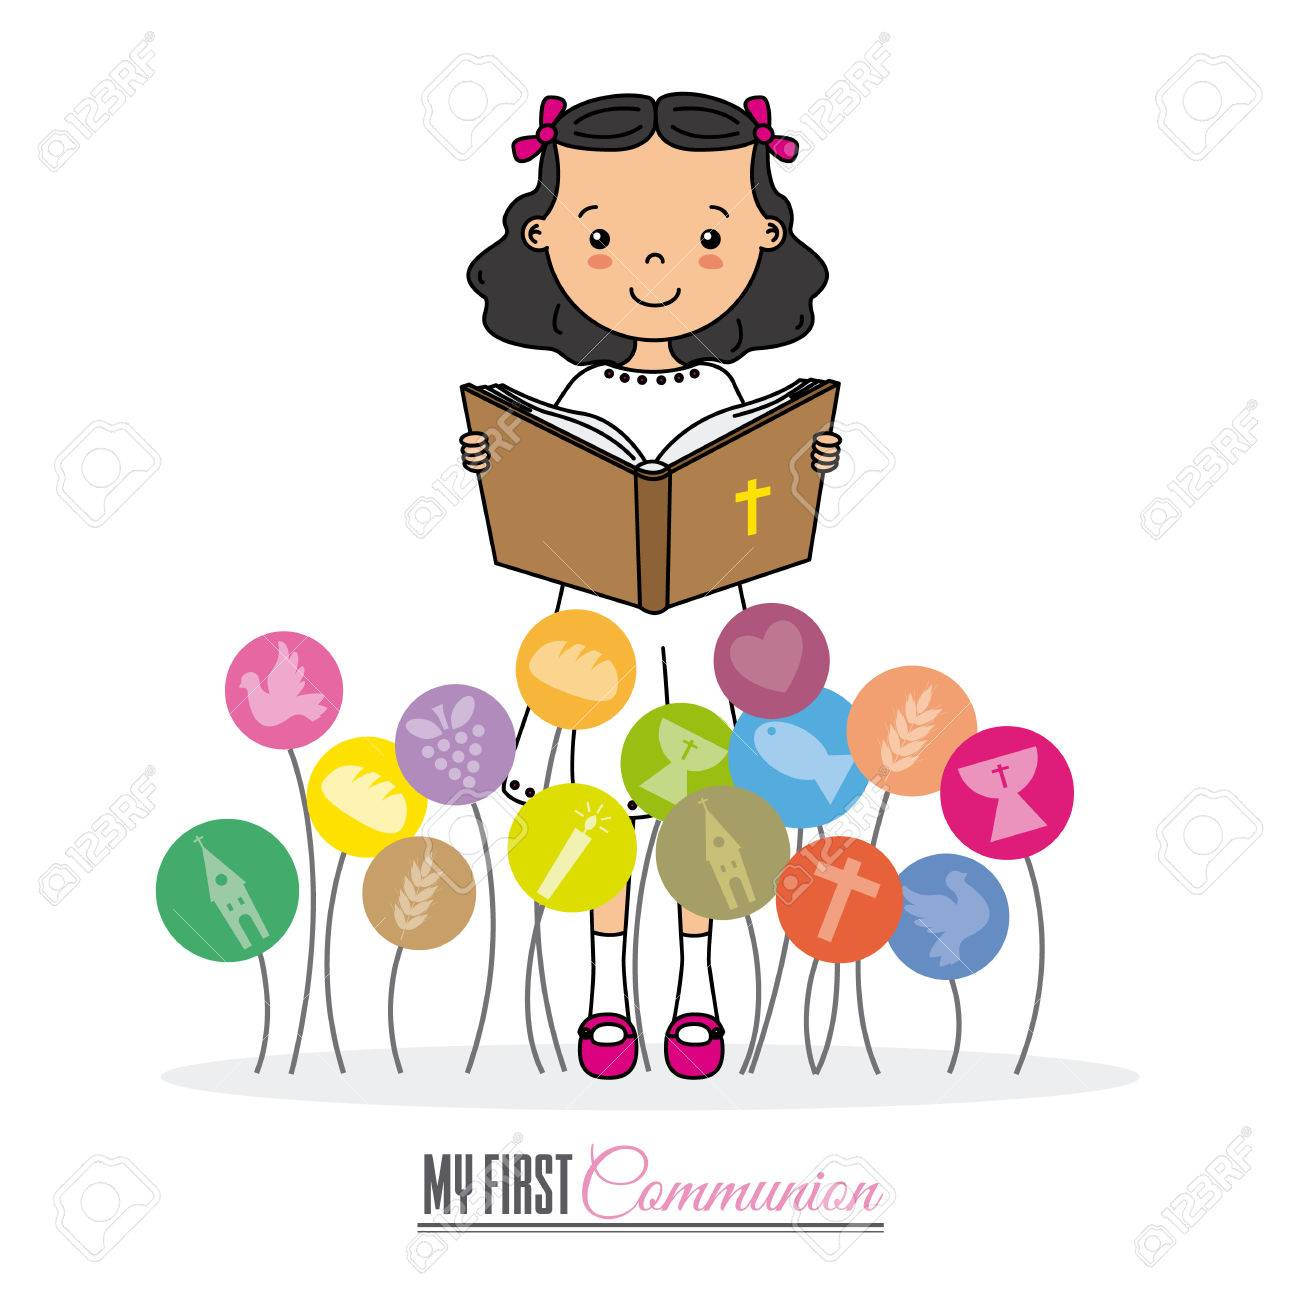 My first communion girl. Space for text Stock Vector - 80565306